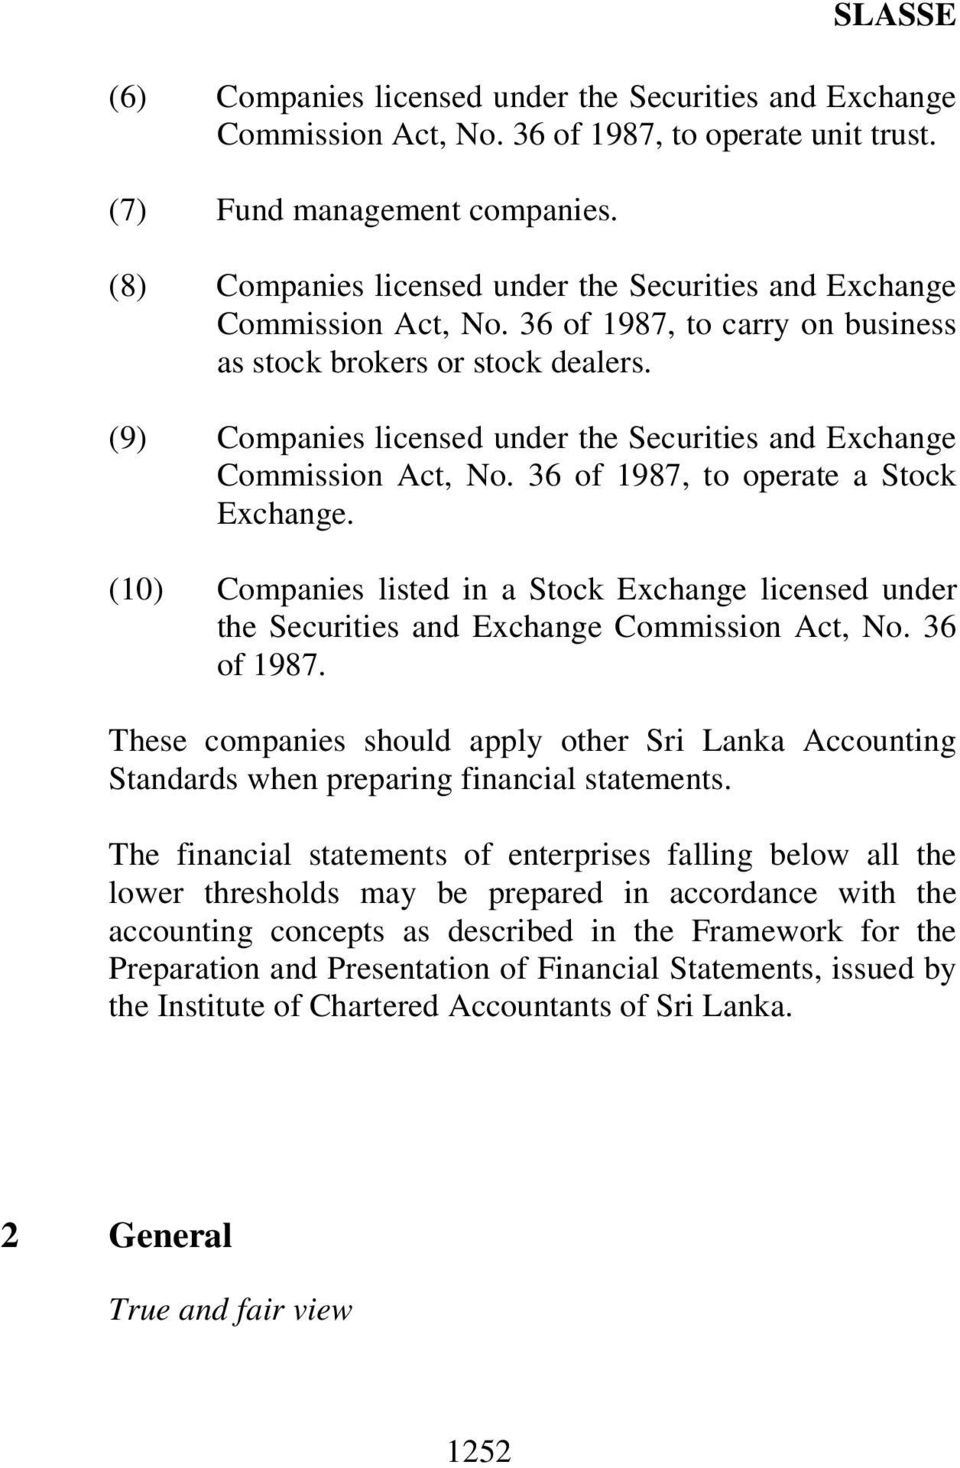 (9) Companies licensed under the Securities and Exchange Commission Act, No. 36 of 1987, to operate a Stock Exchange.